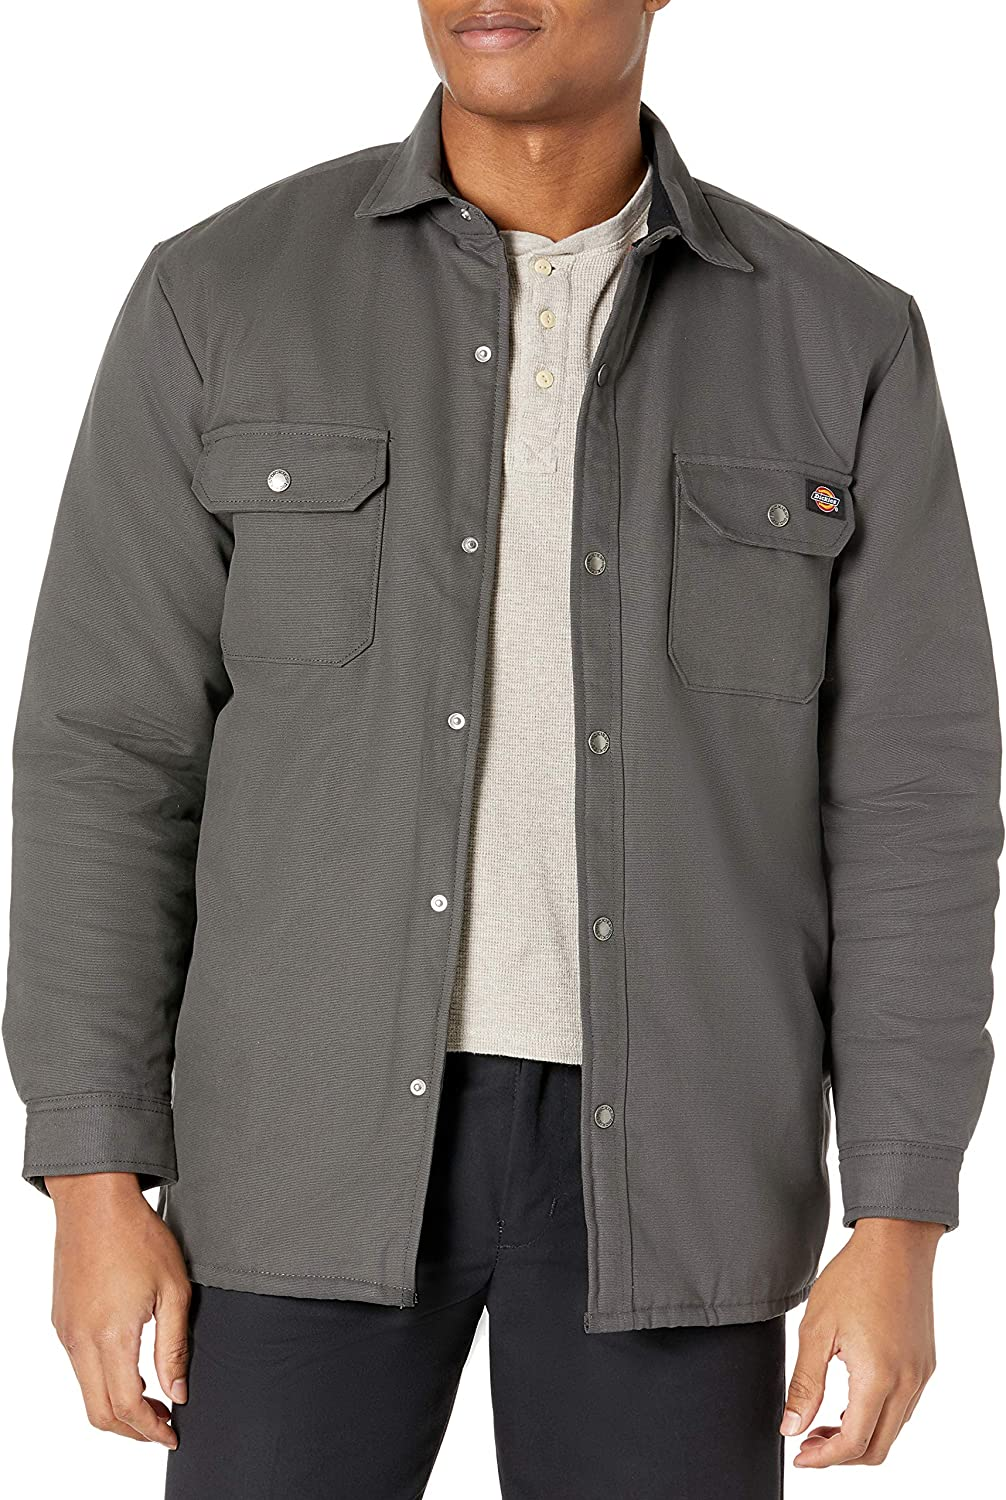 Dickies Men's Flannel Lined Duck Shirt Jacket with Hydroshield